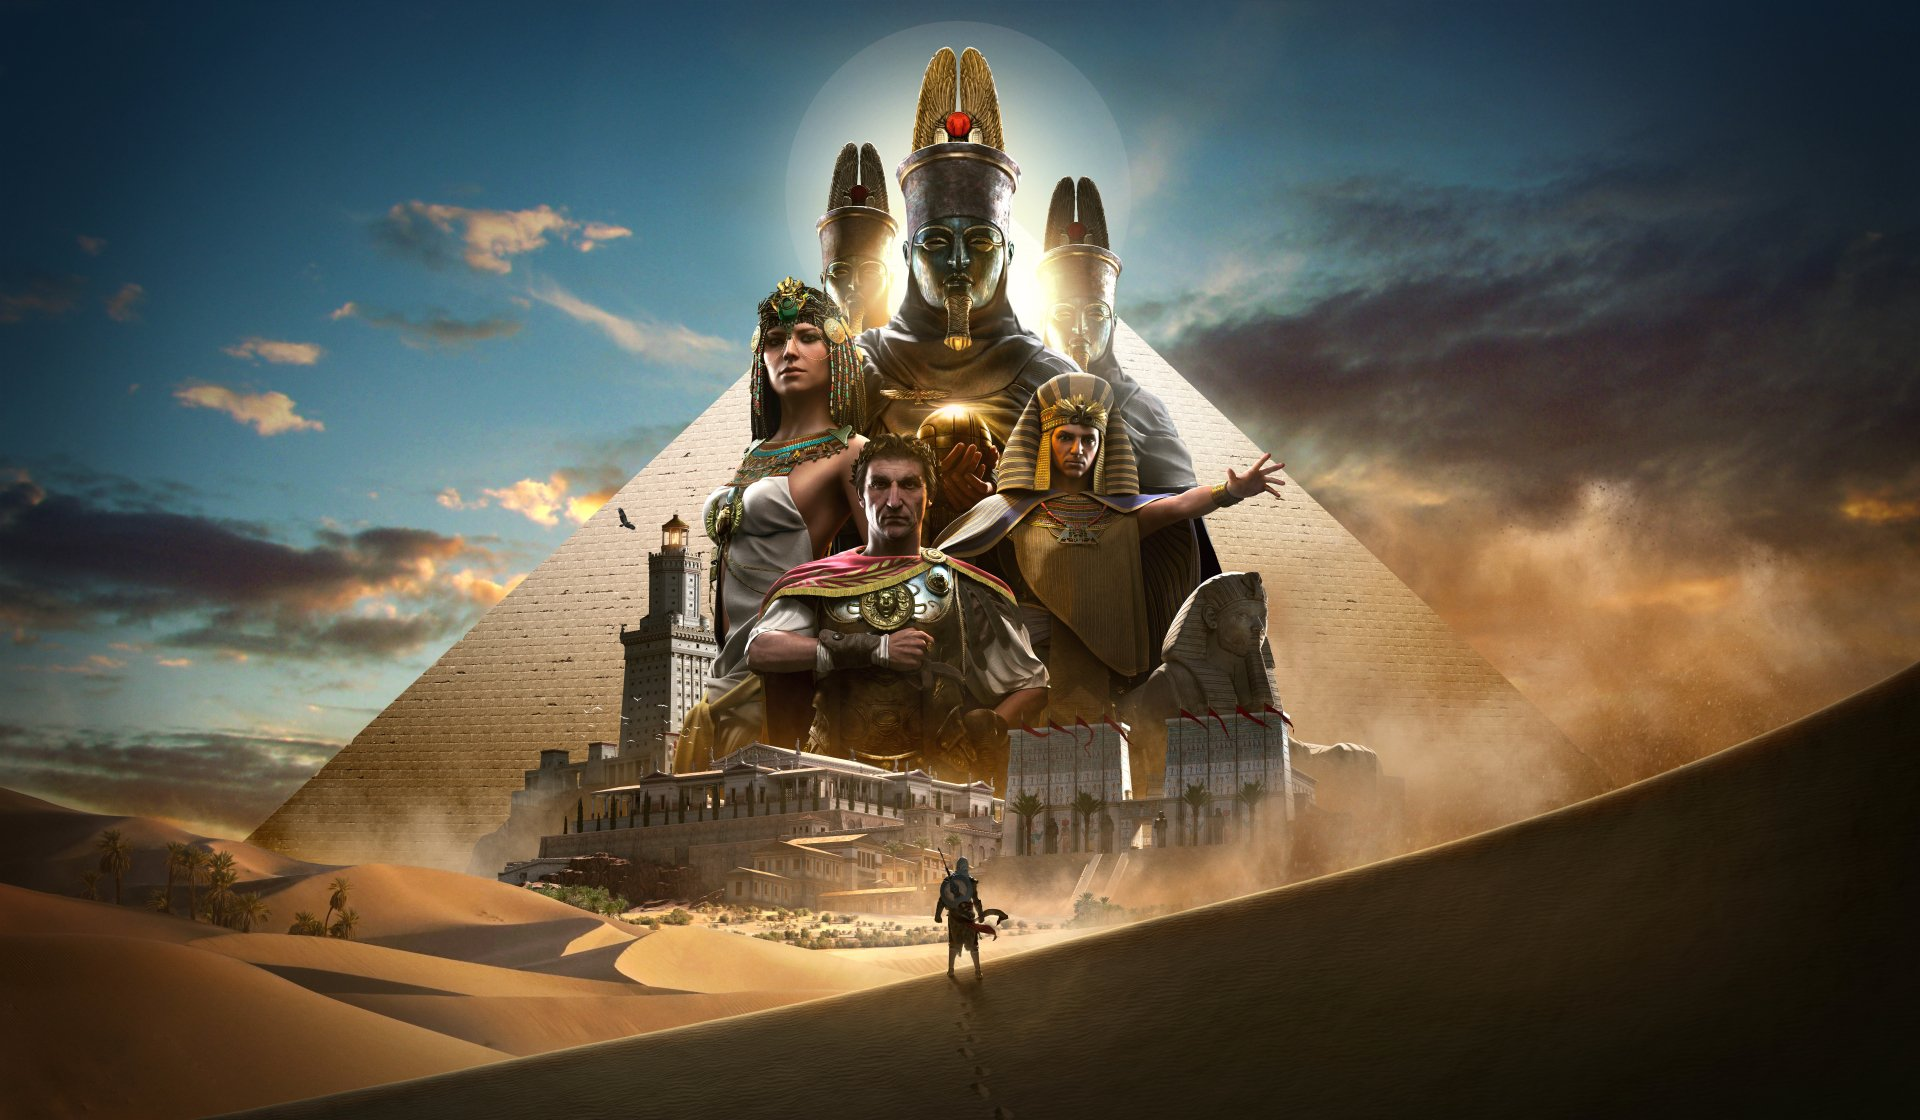 Video Game - Assassin's Creed Origins  Ptolemy XIII Cleopatra Julius Caesar Bayek Of Siwa Wallpaper